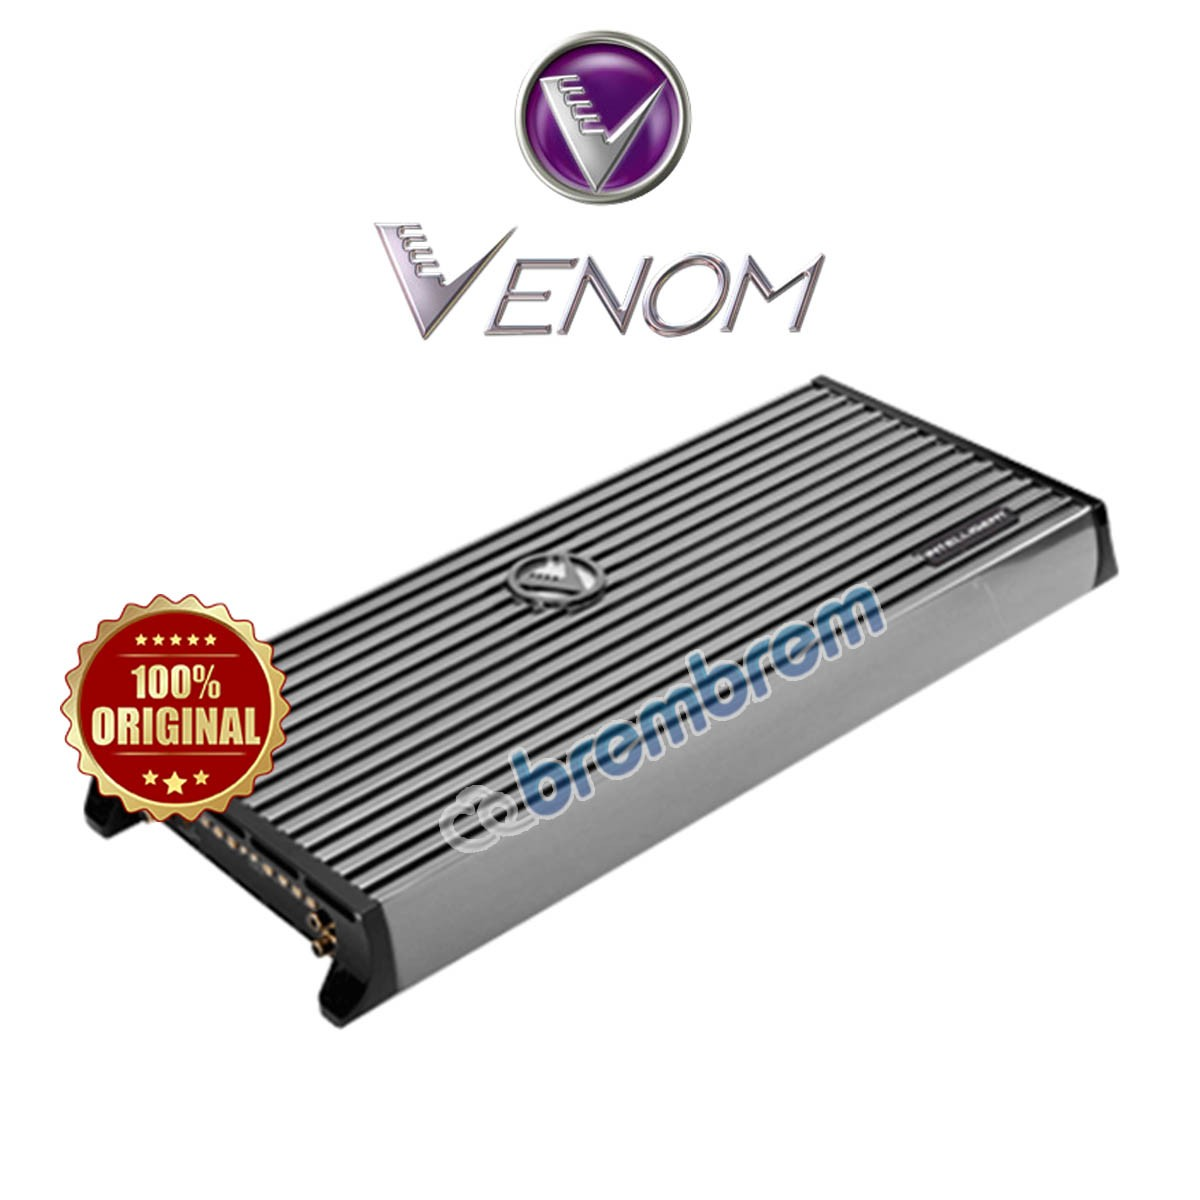 VENOM INTELLEGENT SERIES VI200.2 - POWER 2 CHANNEL